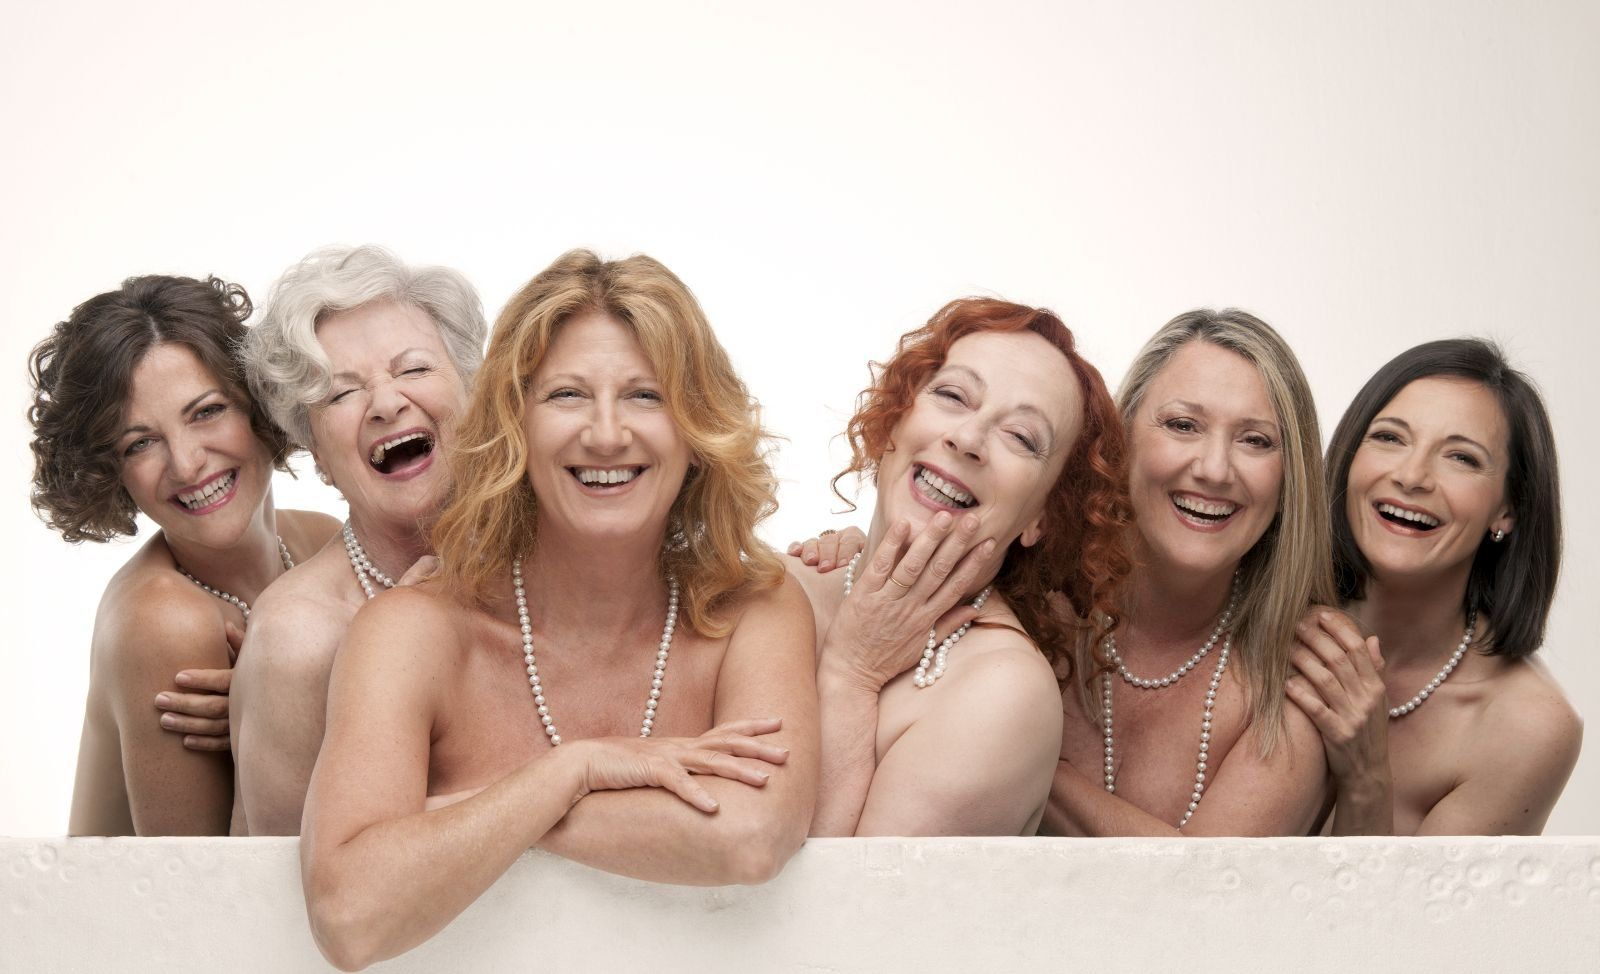 The M. reccomend Mature calendar girls